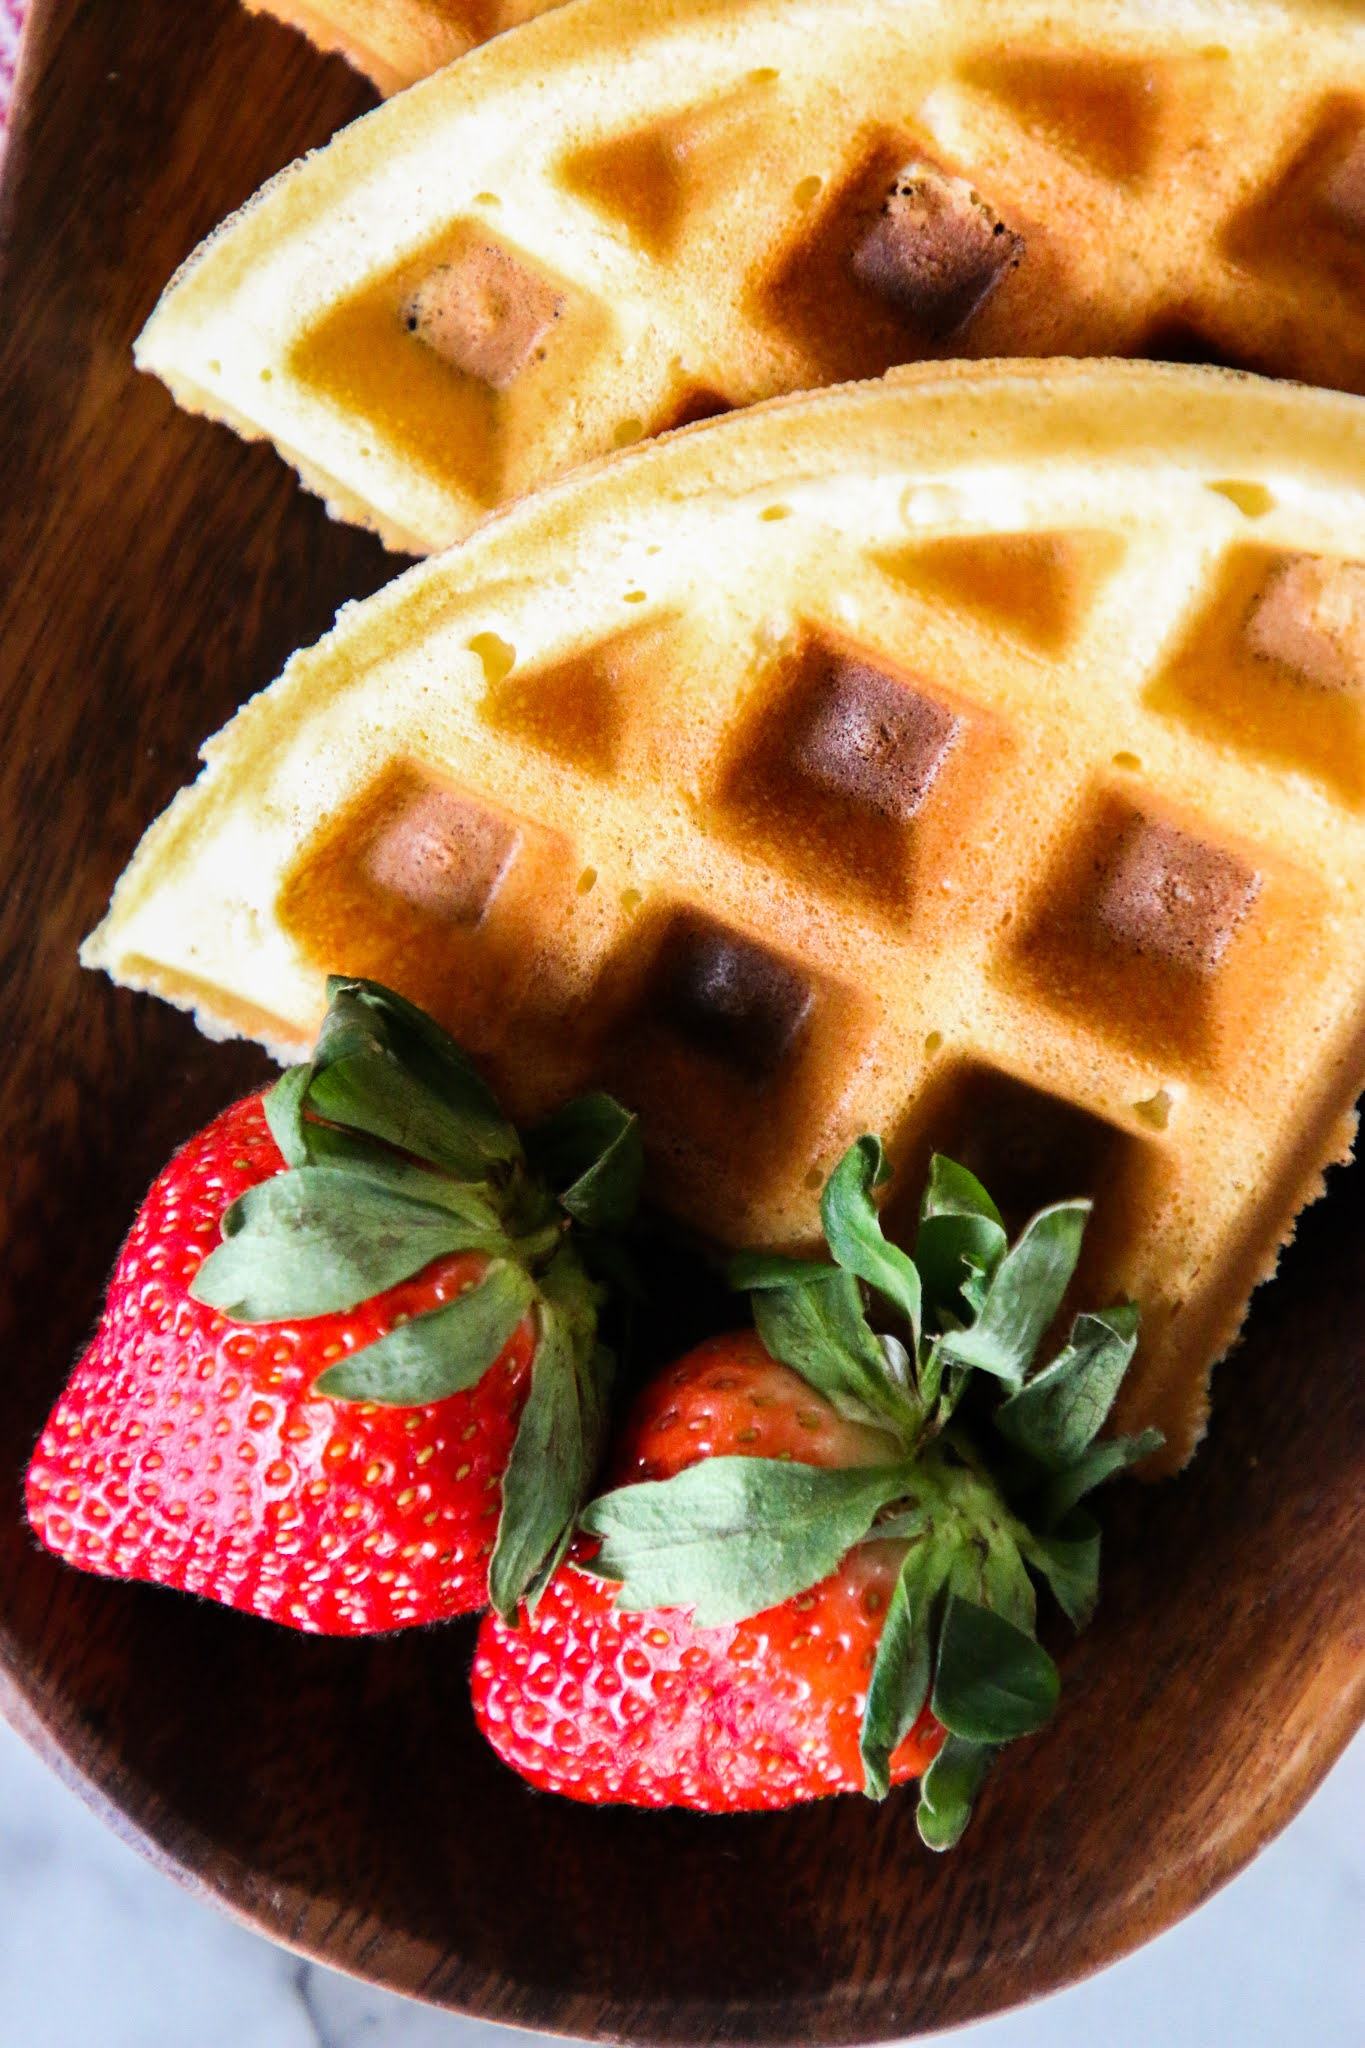 Four waffle triangles on a wood platter with strawberries and a red striped towel in the background.